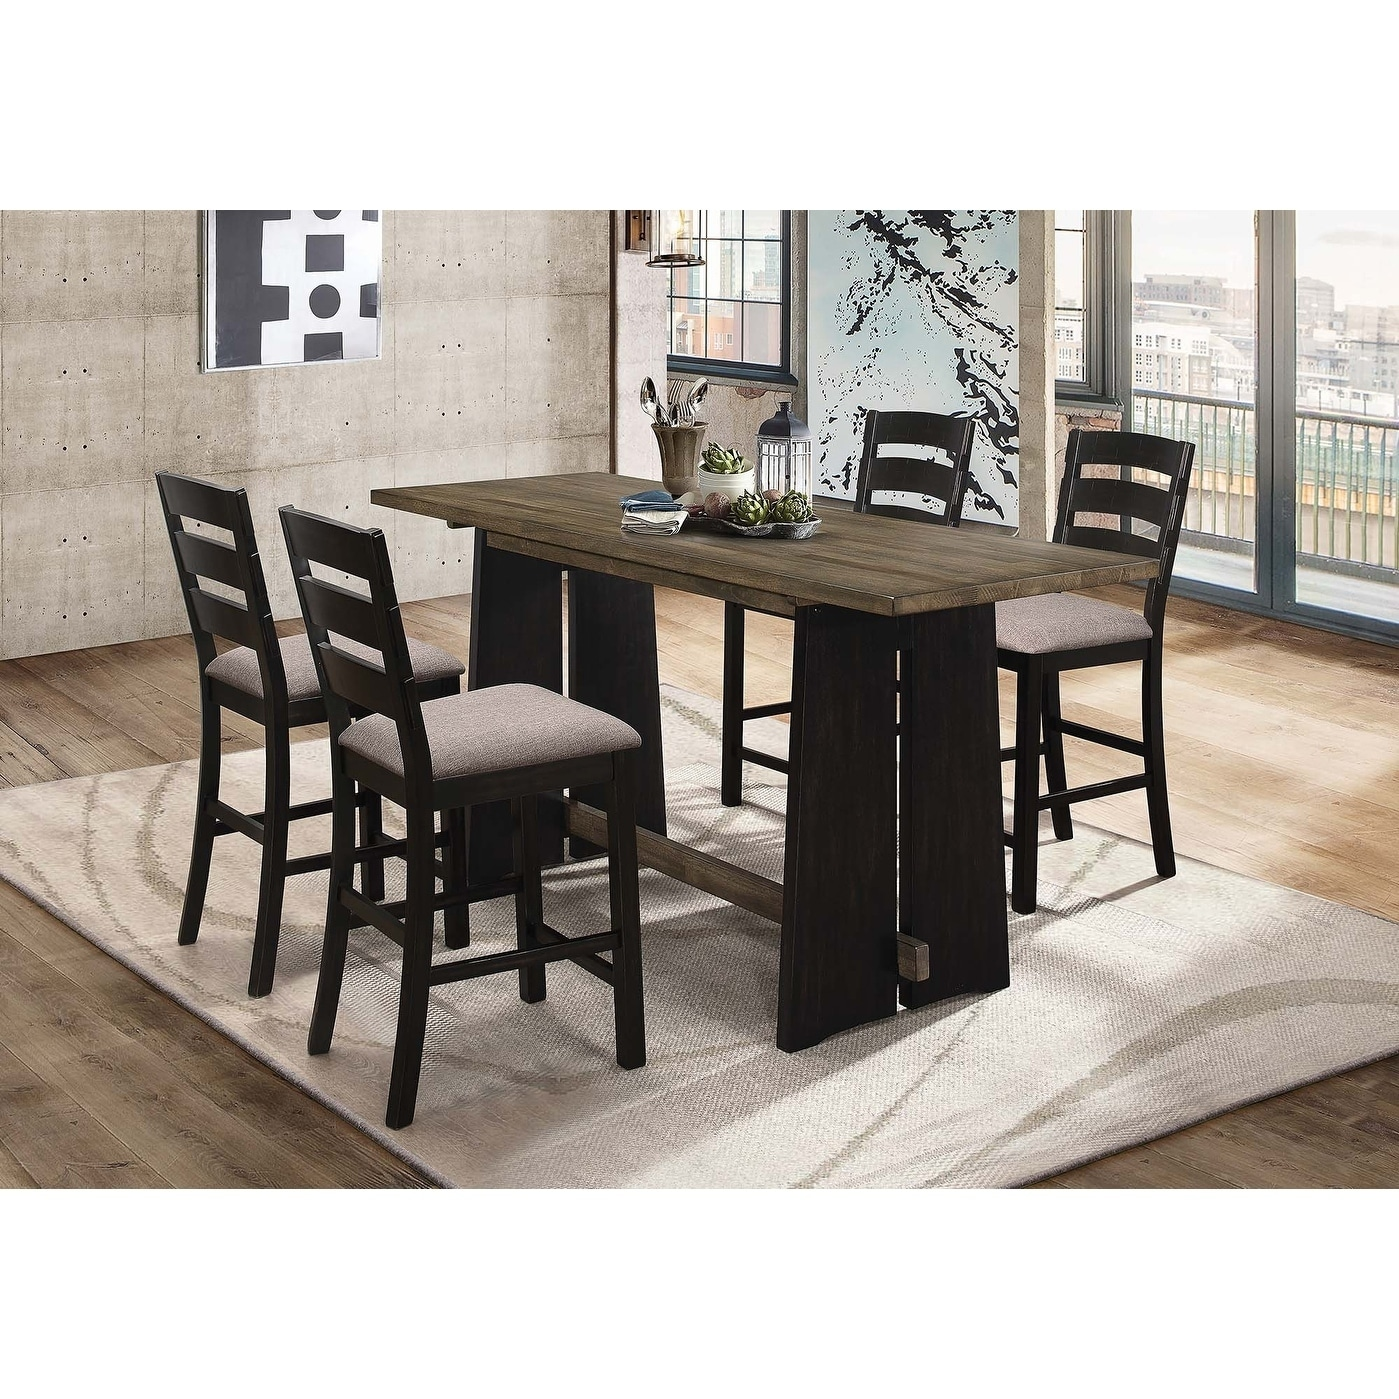 Georgia Industrial Khaki And Black Counter Height Table On Sale Overstock 27221102